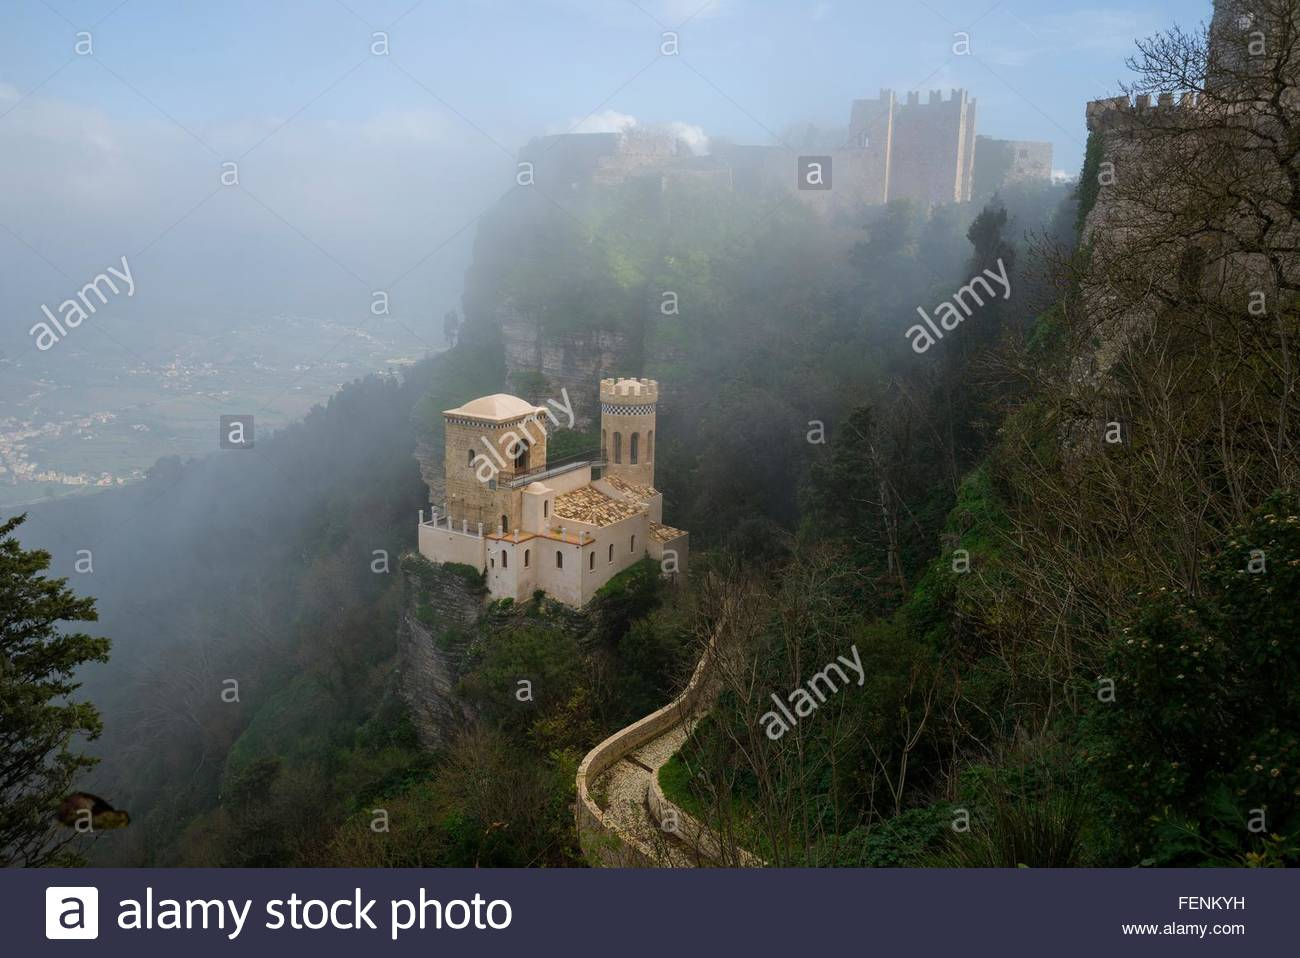 High angle view of Venus castle in mist, Erice, Sicily, Italy - Stock Image